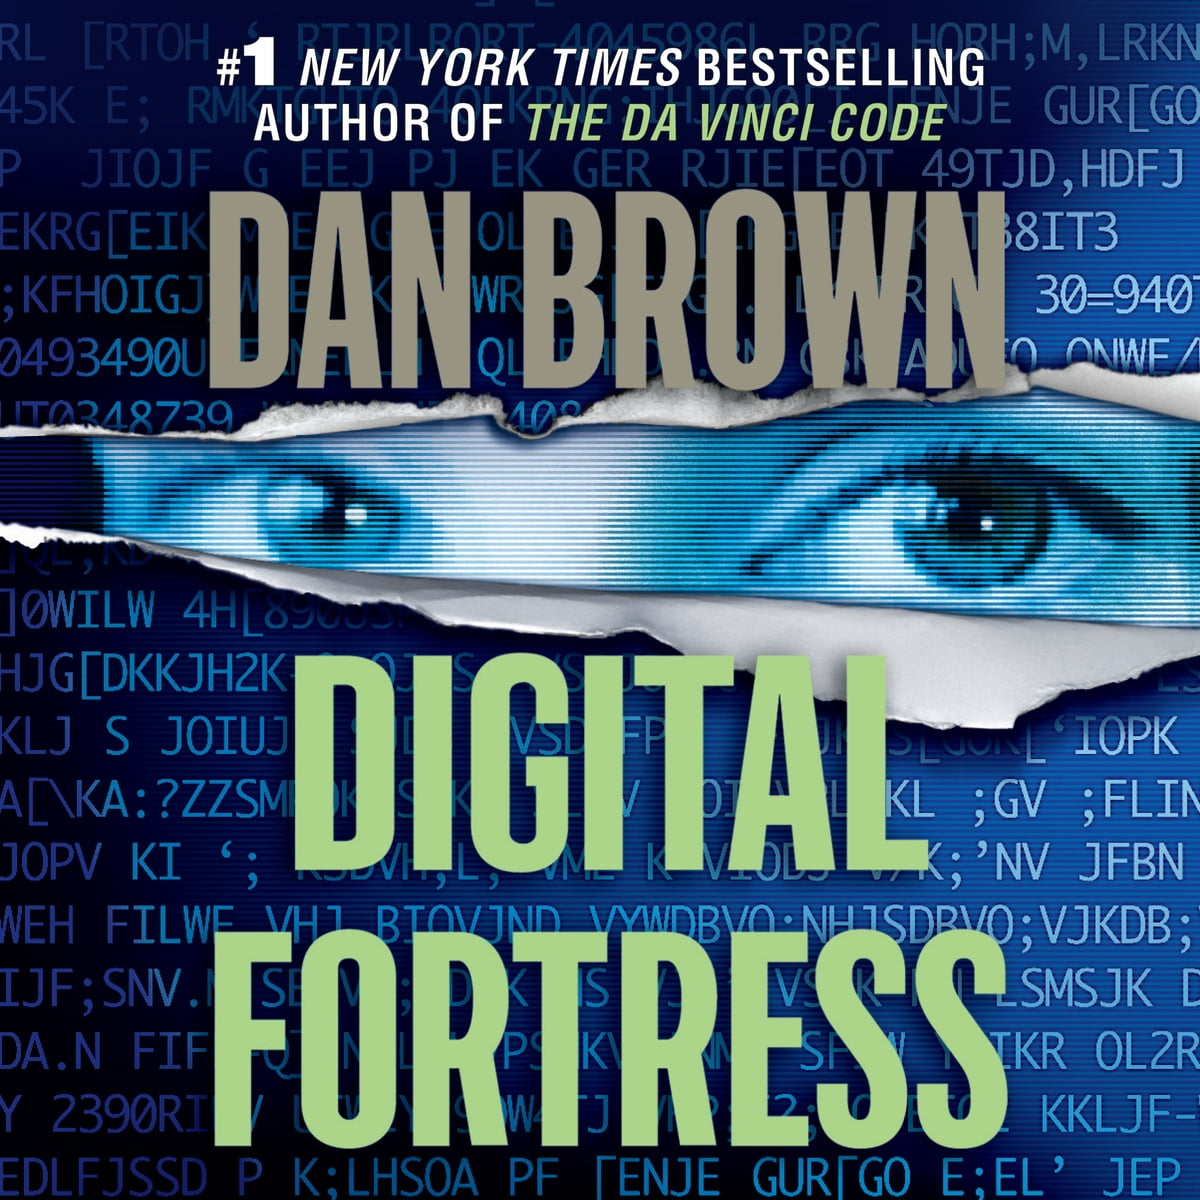 Digital fortress audiobook by dan brown 9781593973971 rakuten kobo buycottarizona